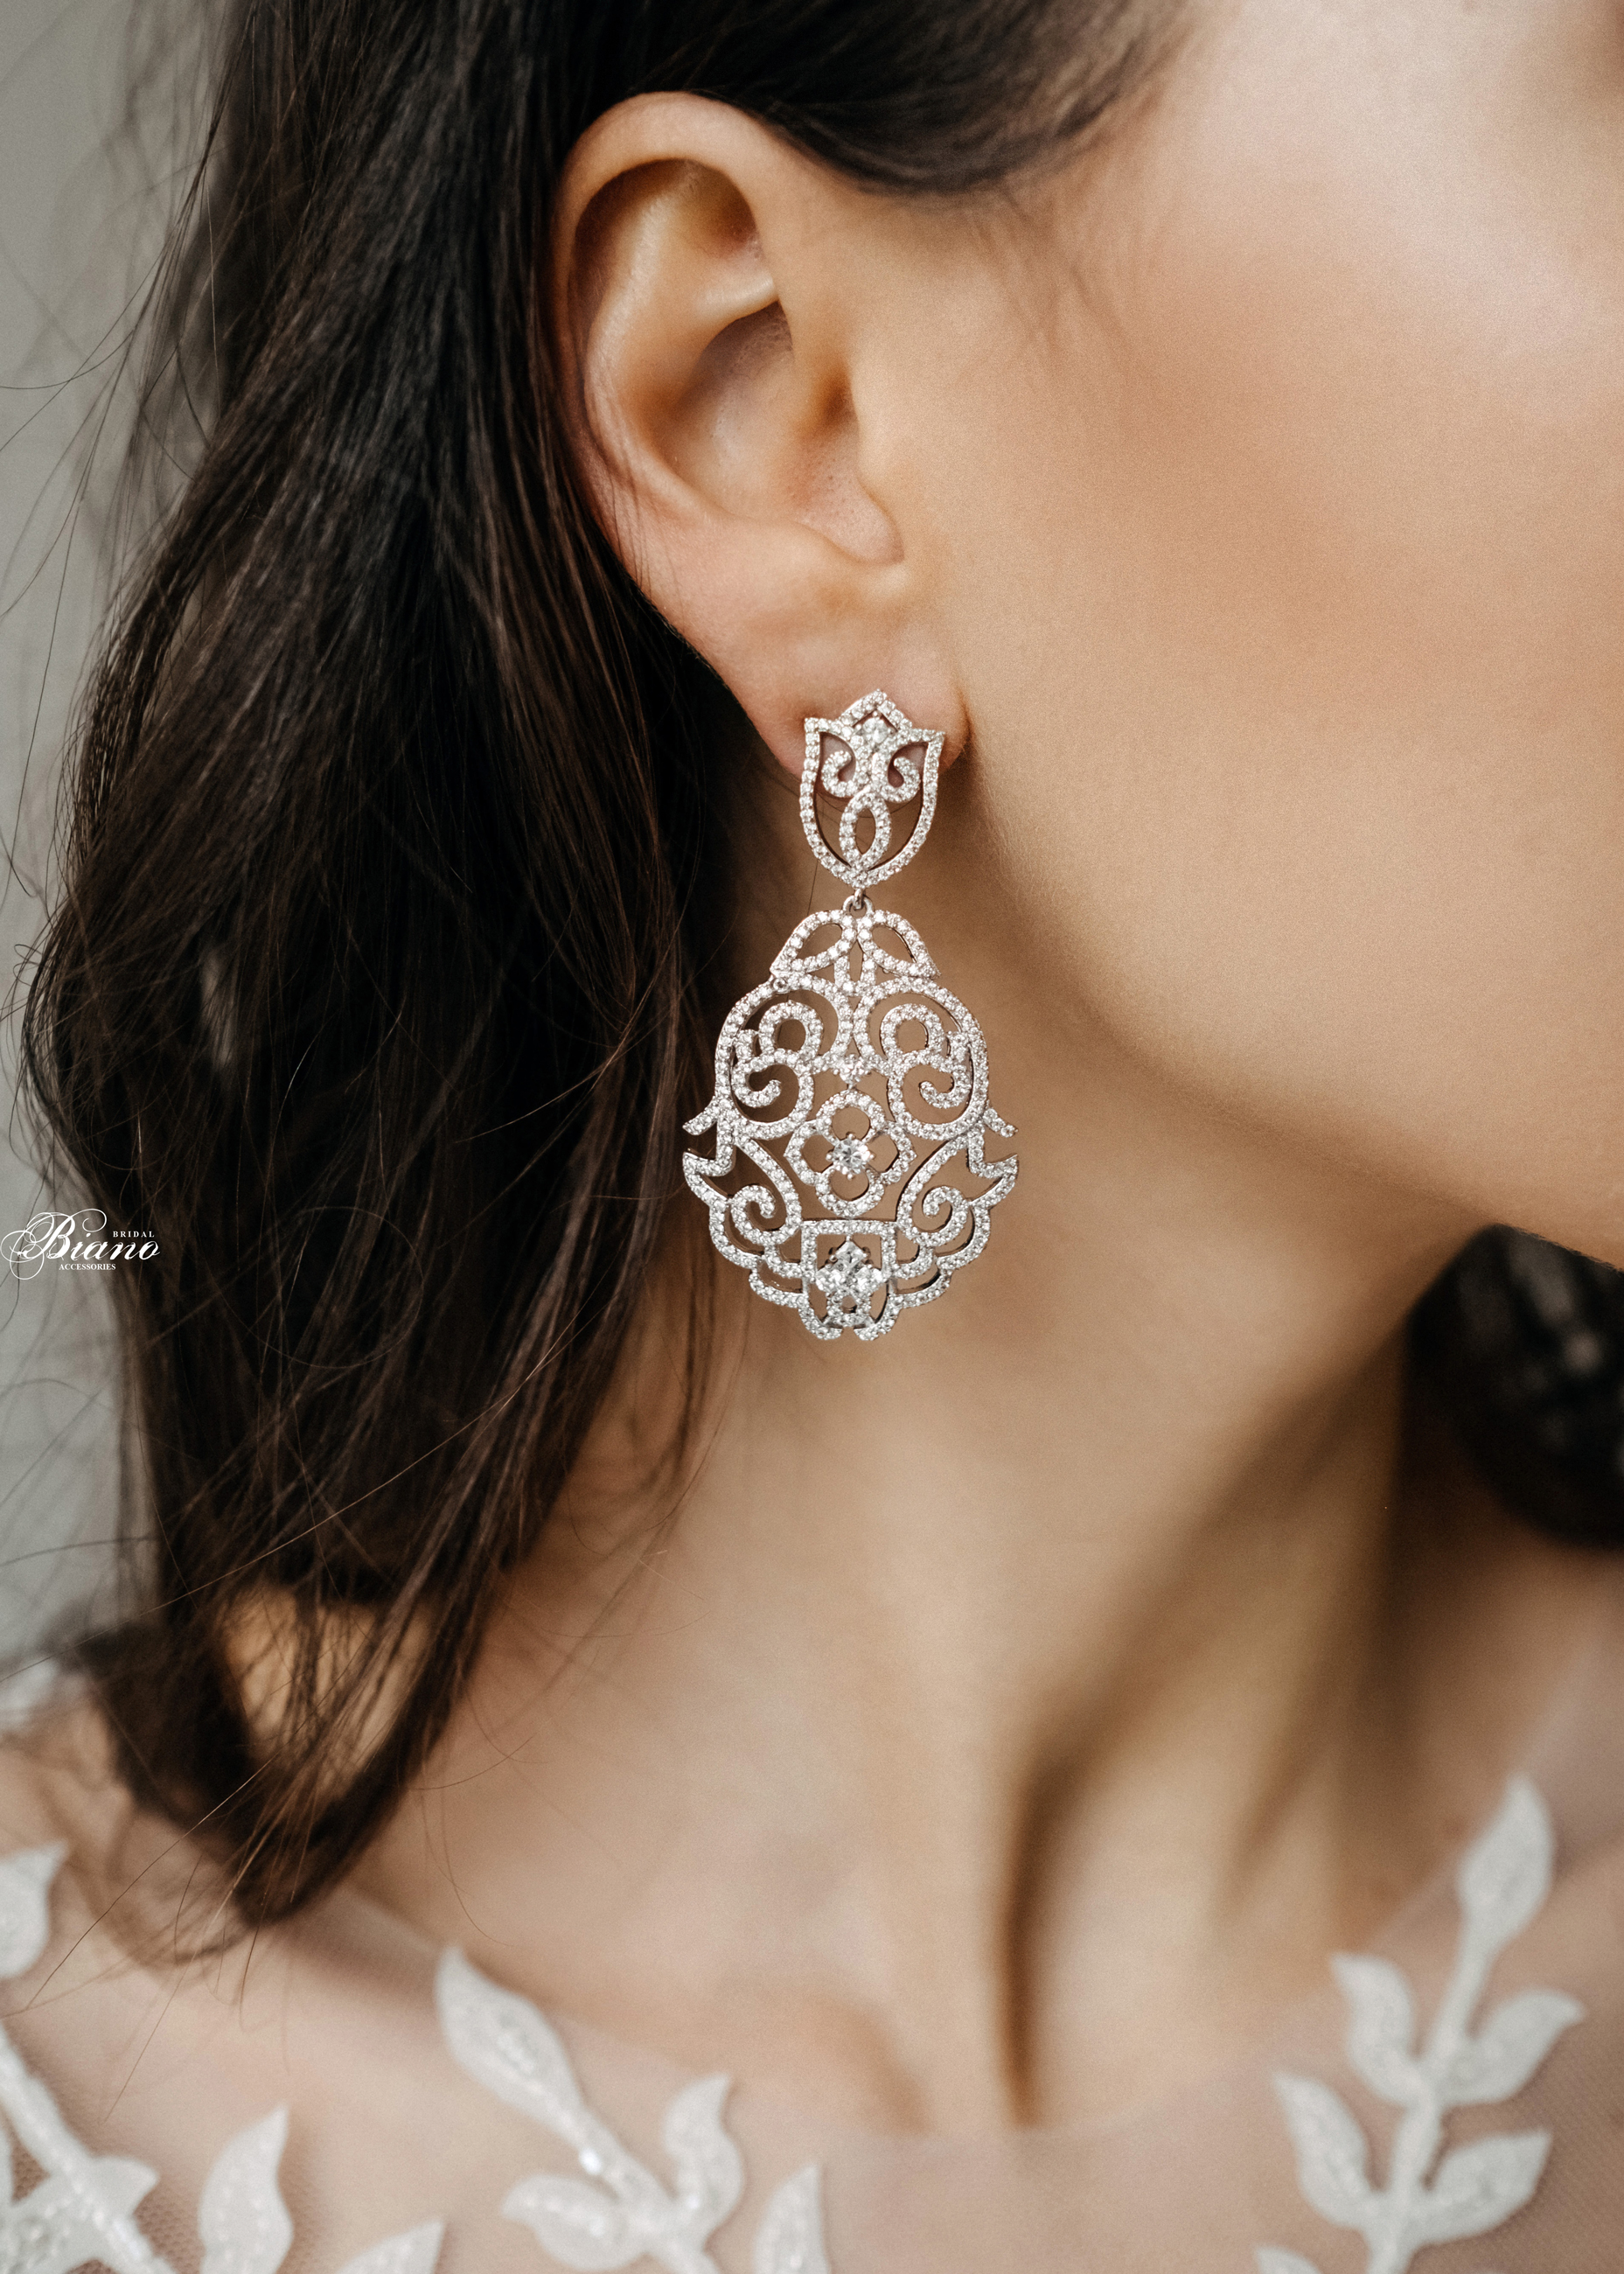 Find your perfect Fashion Earrings - Handmade in SwitzerlandUnique DesignPossibility to Rush OrdersFree Shipping WorldwideCustomisable OrdersFast response on your questions